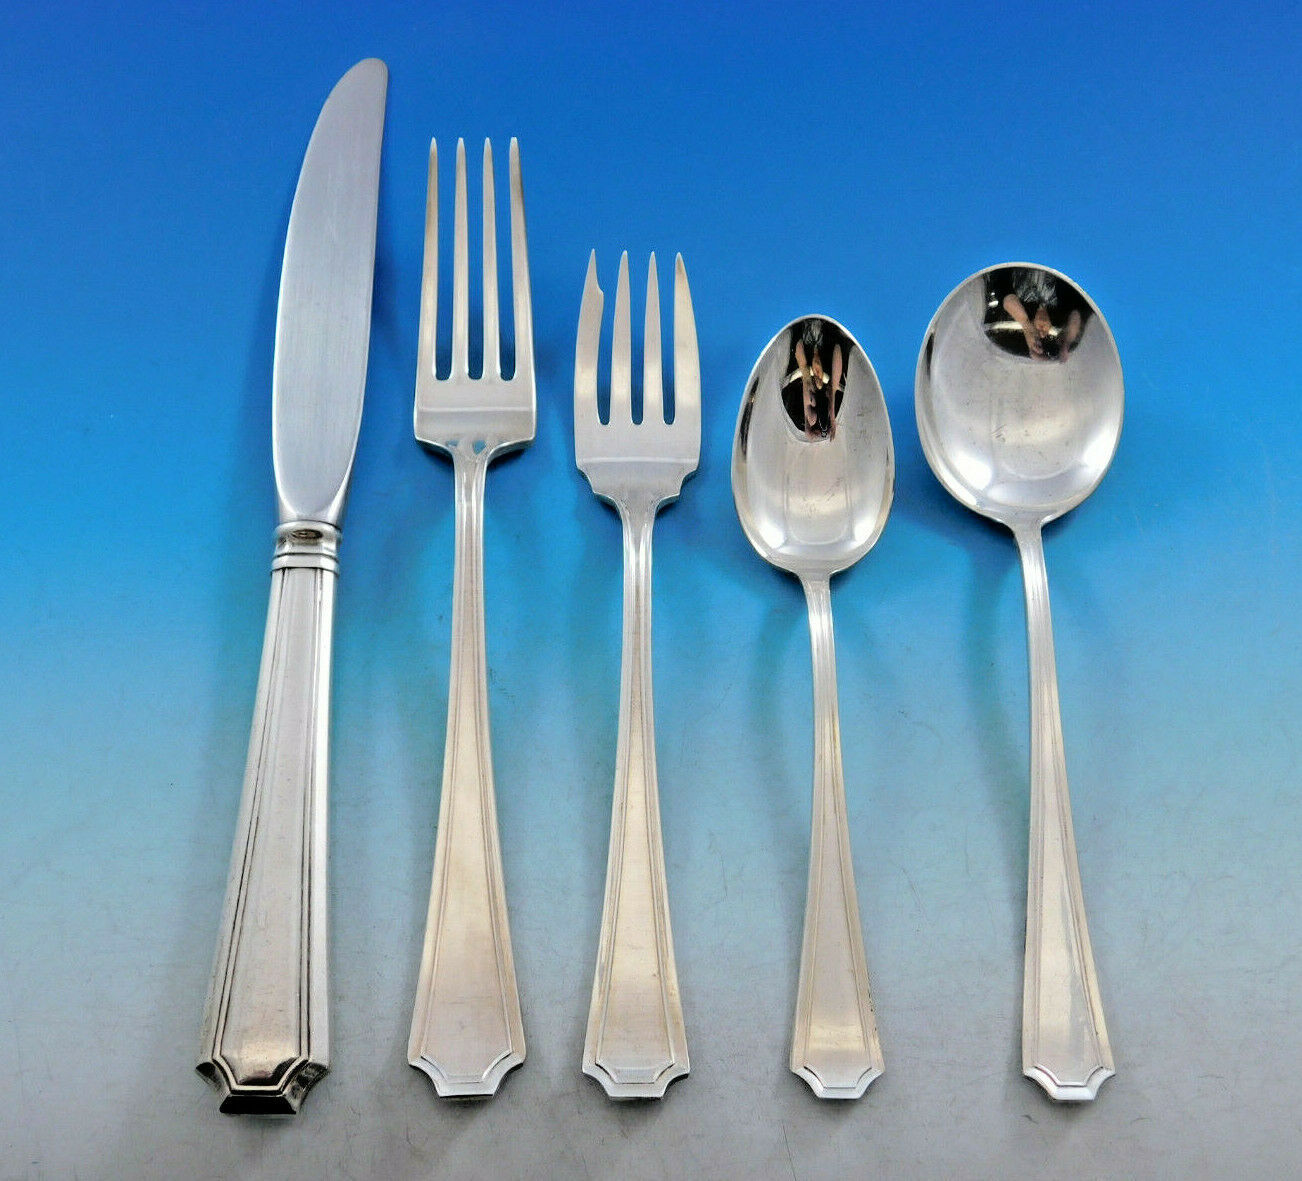 Primary image for Fairfax by Gorham Sterling Silver Flatware Set for 8 Service 42 Pcs Place Size